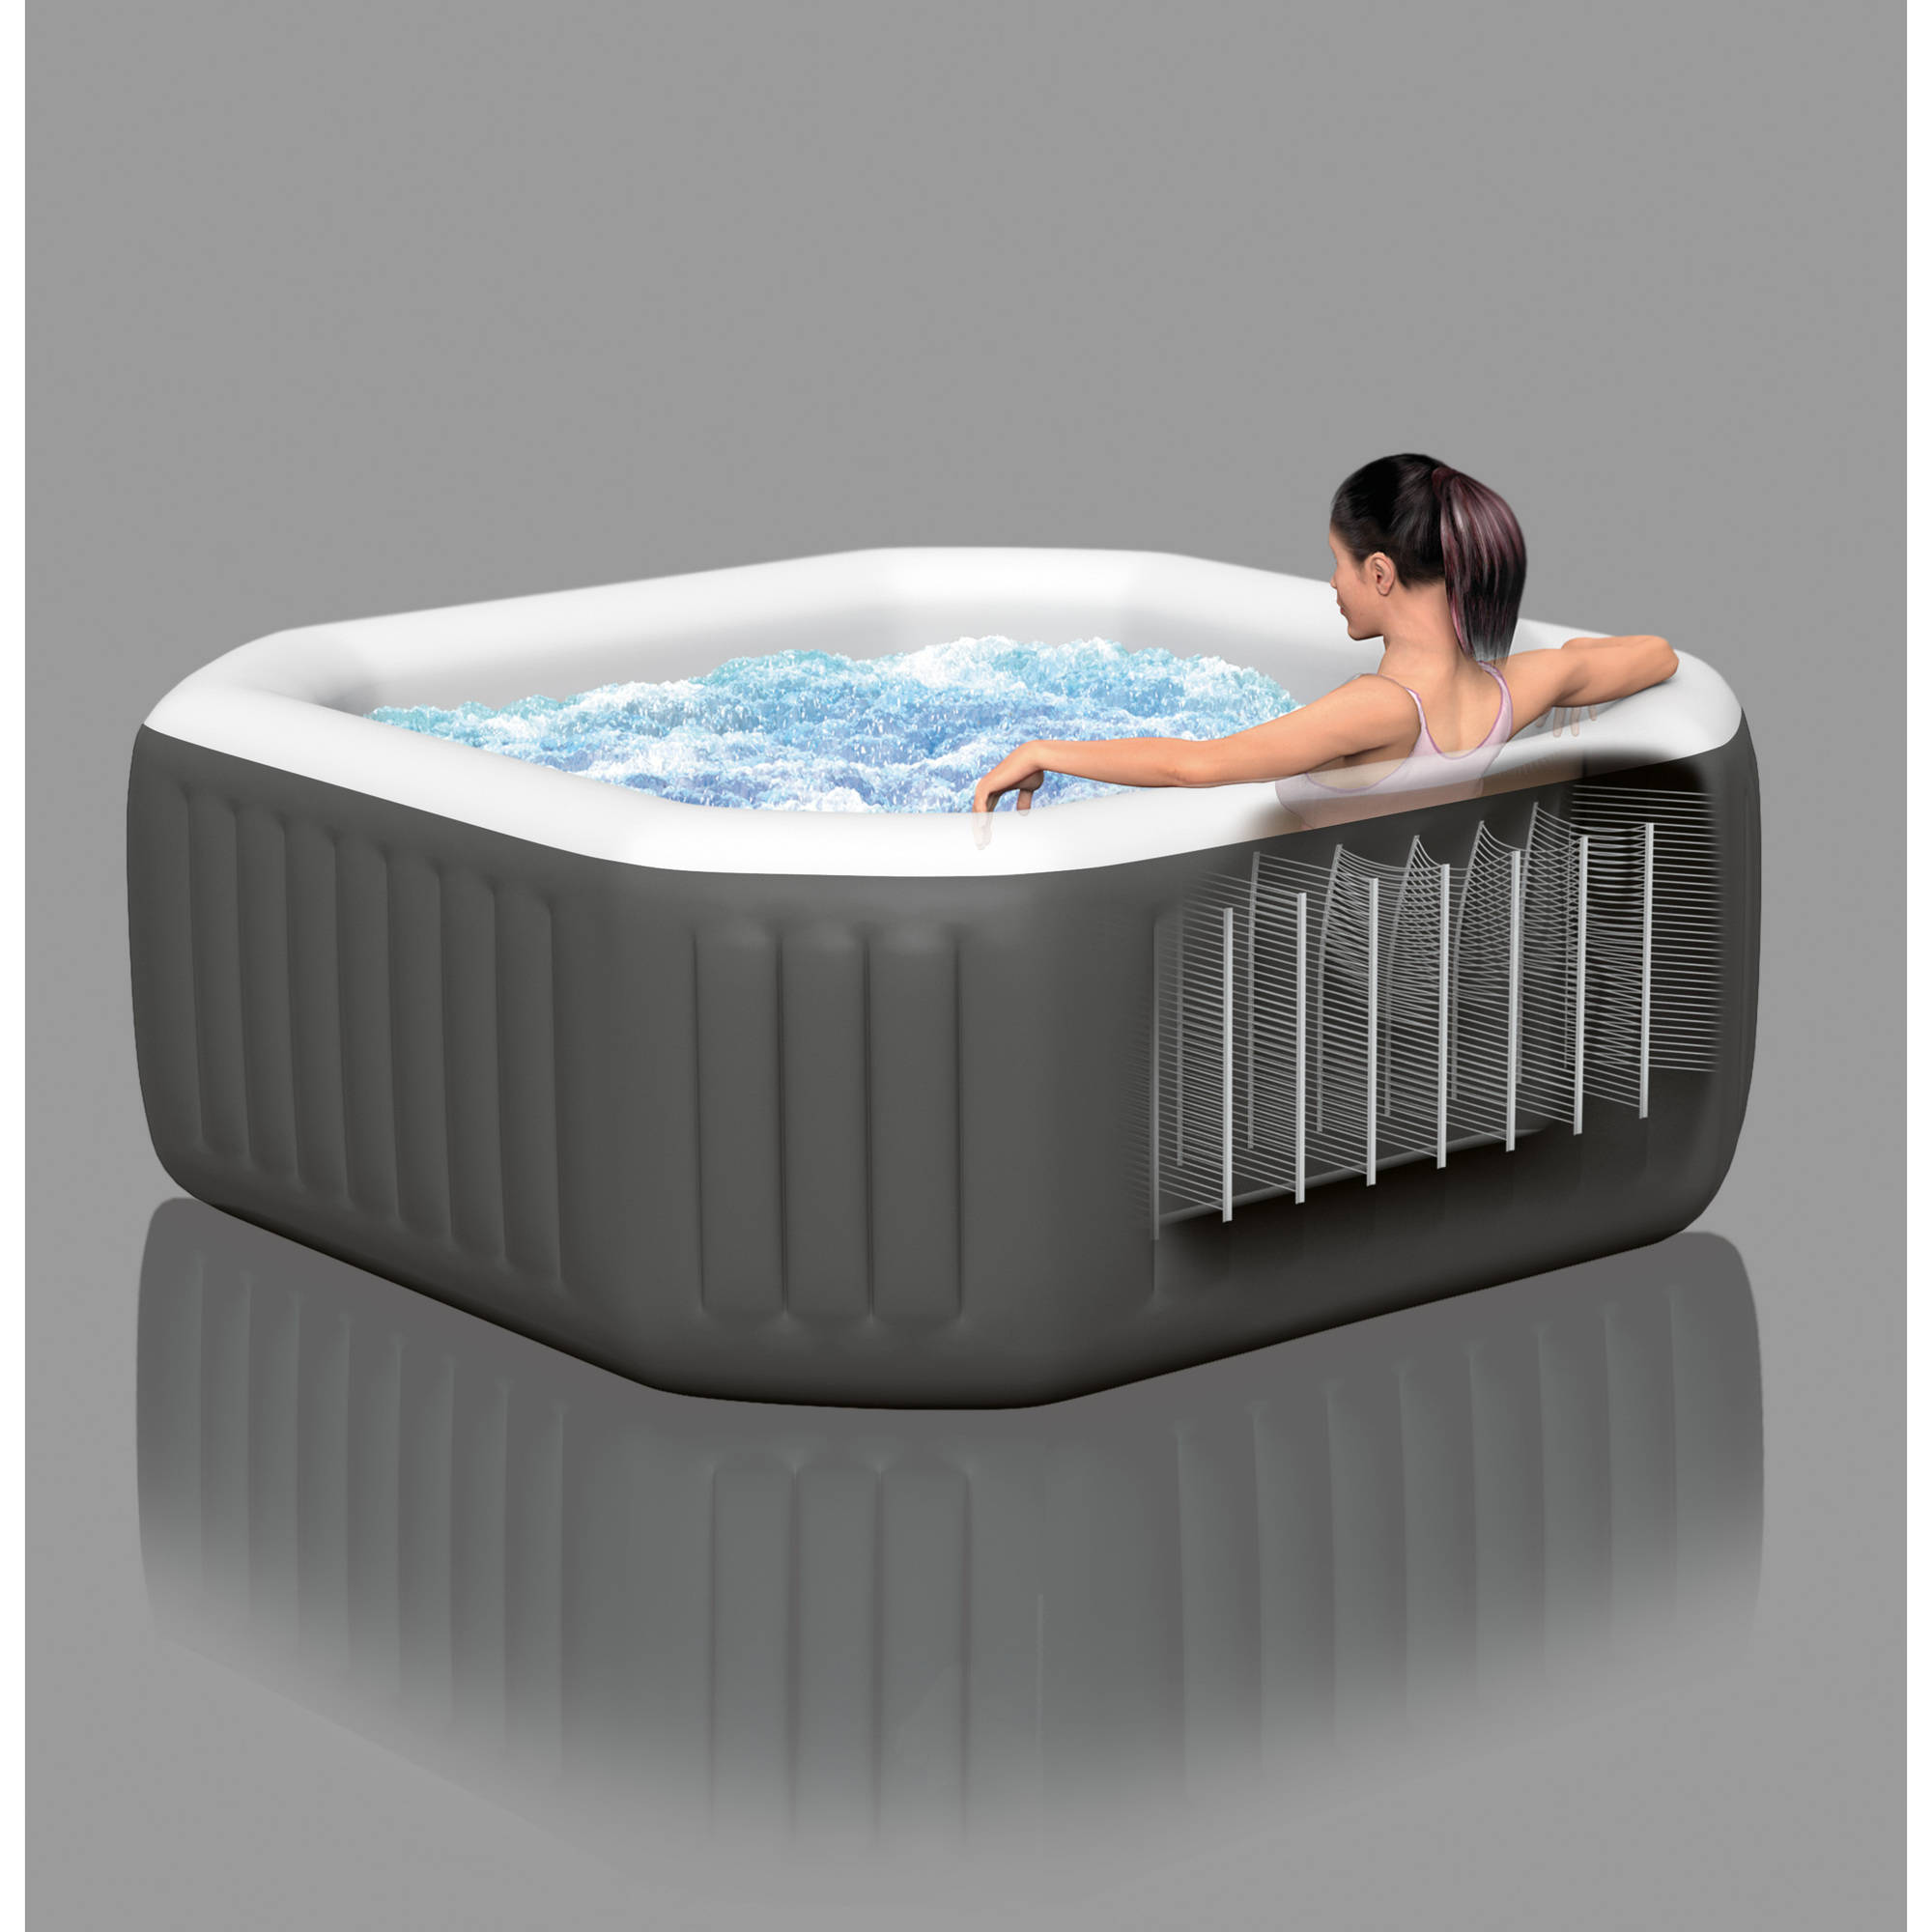 Intex 120 Bubble Jets 4 Person Octagonal PureSpa - Walmart.com